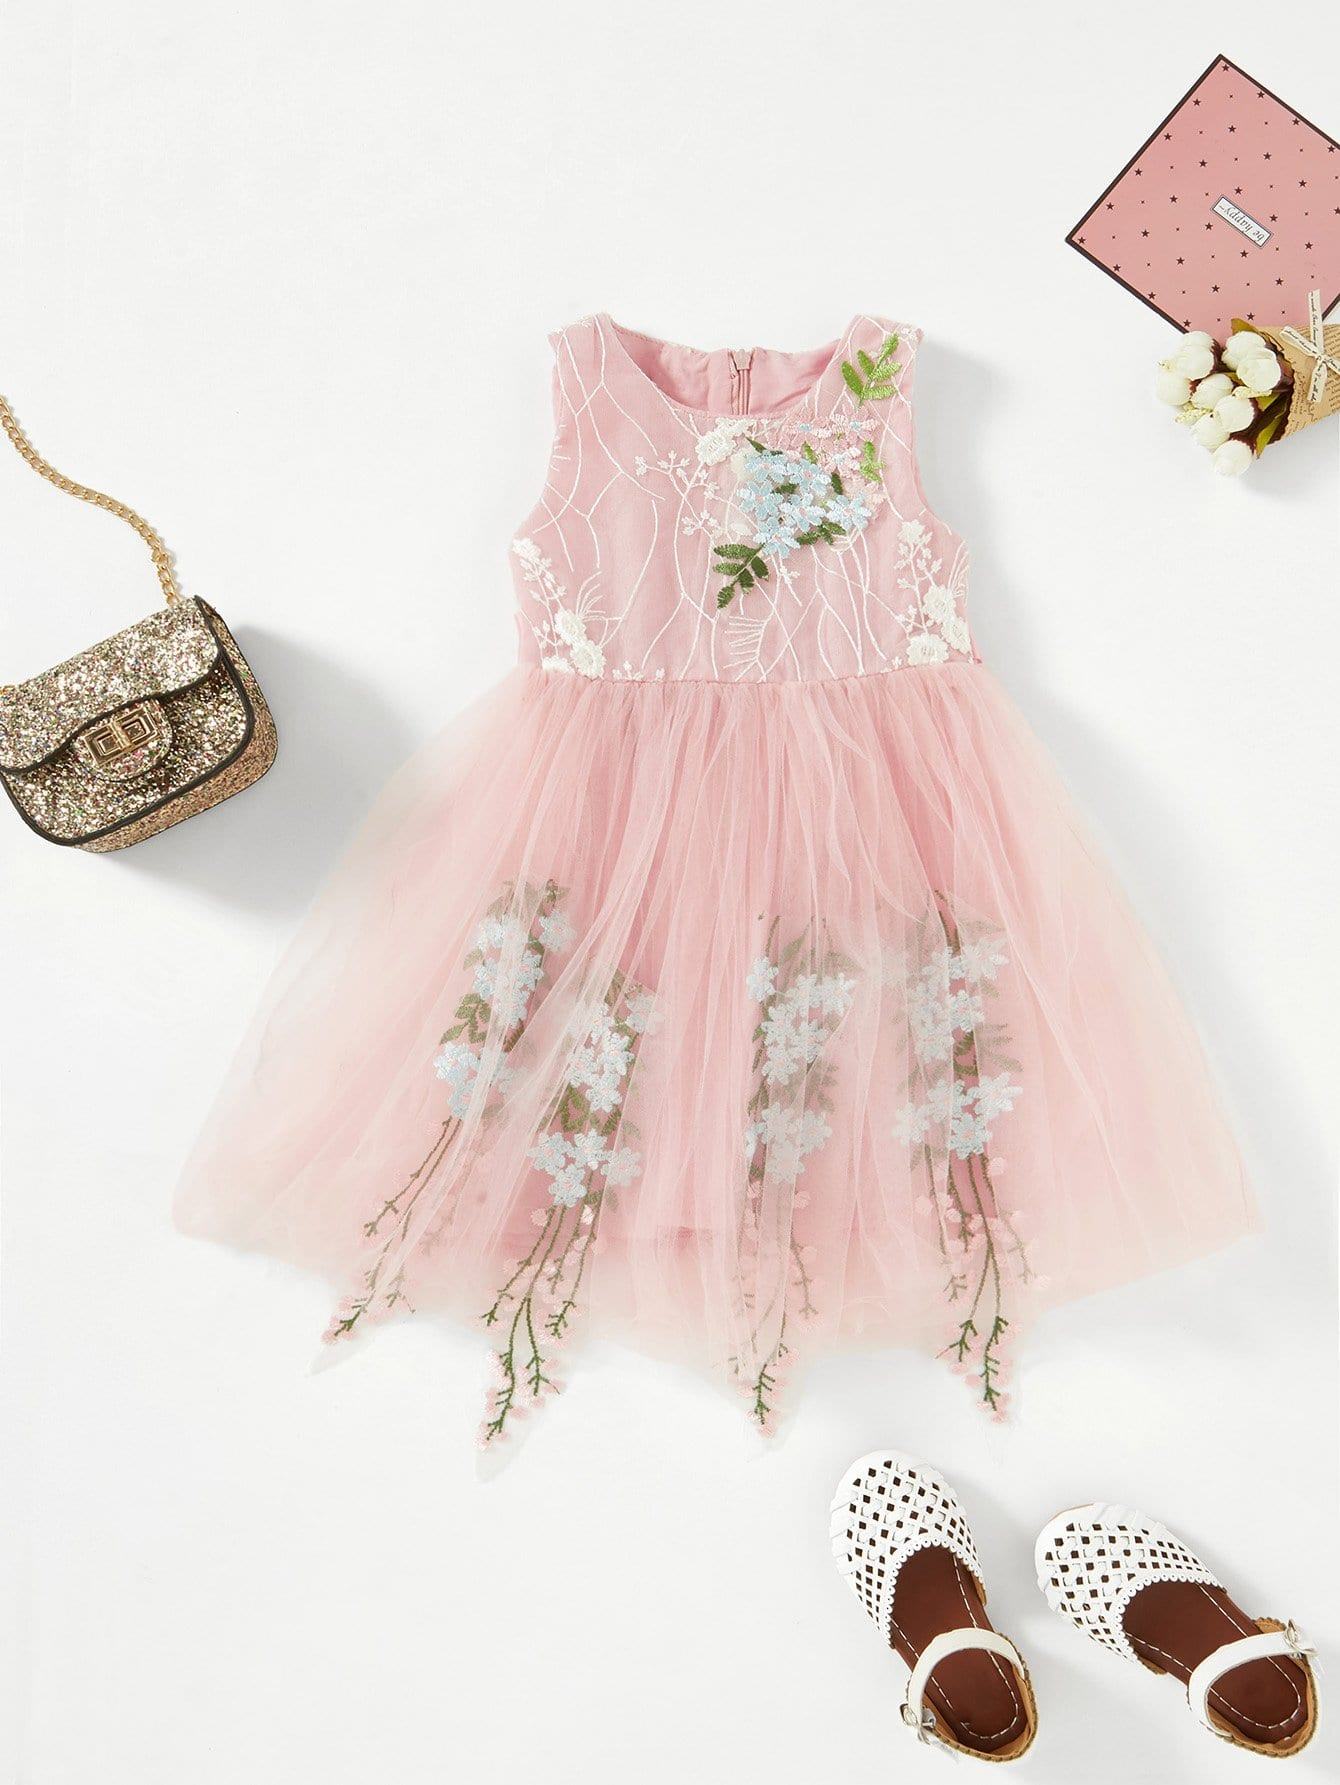 Embroidery Mesh Ribbon Tie Dress embroidery mesh ribbon tie dress